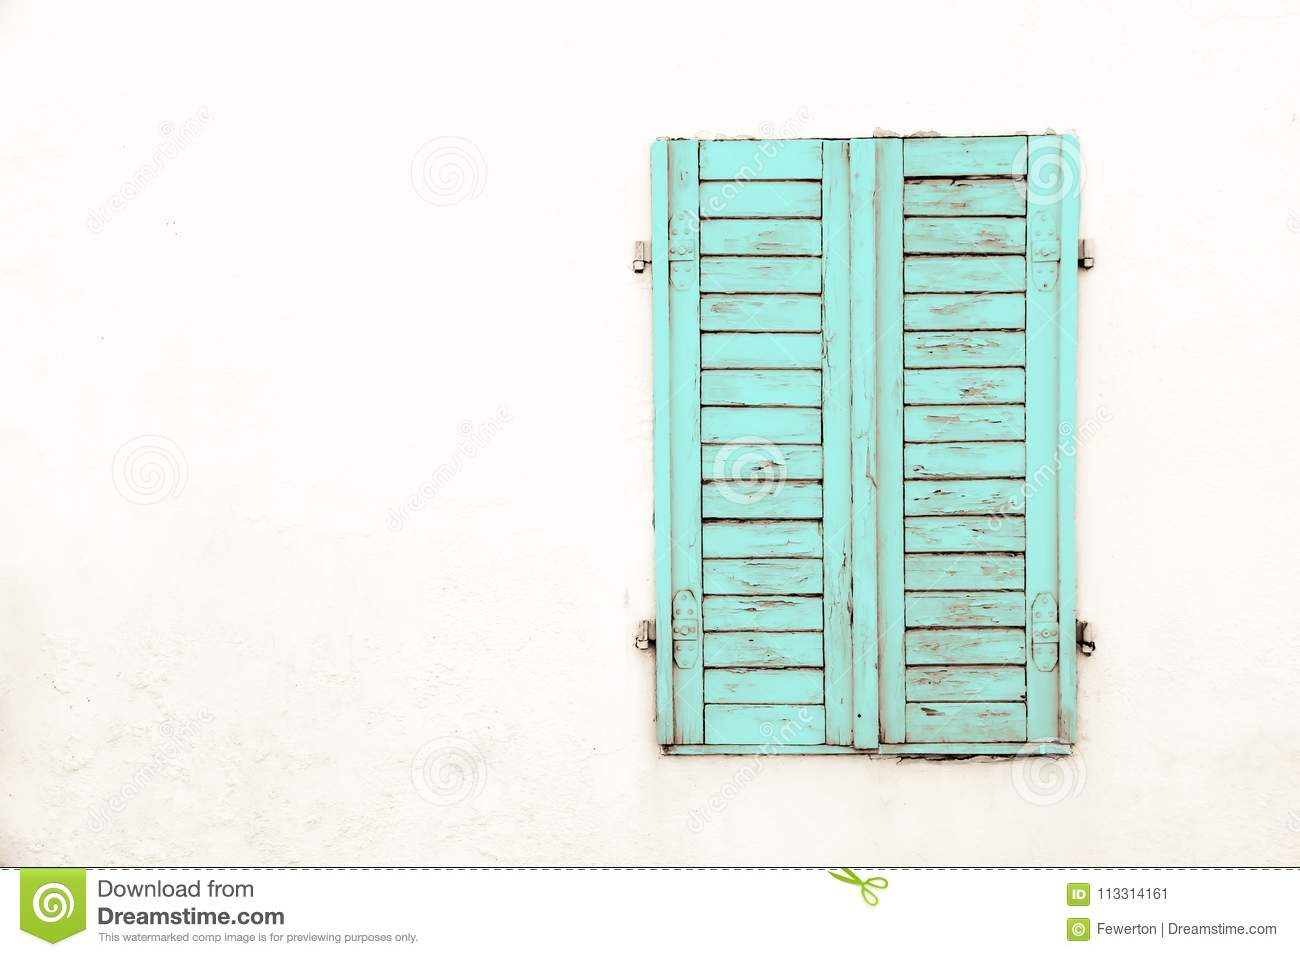 Rustic old grungy and weathered green cyan wooden closed window shutters with peeling paint